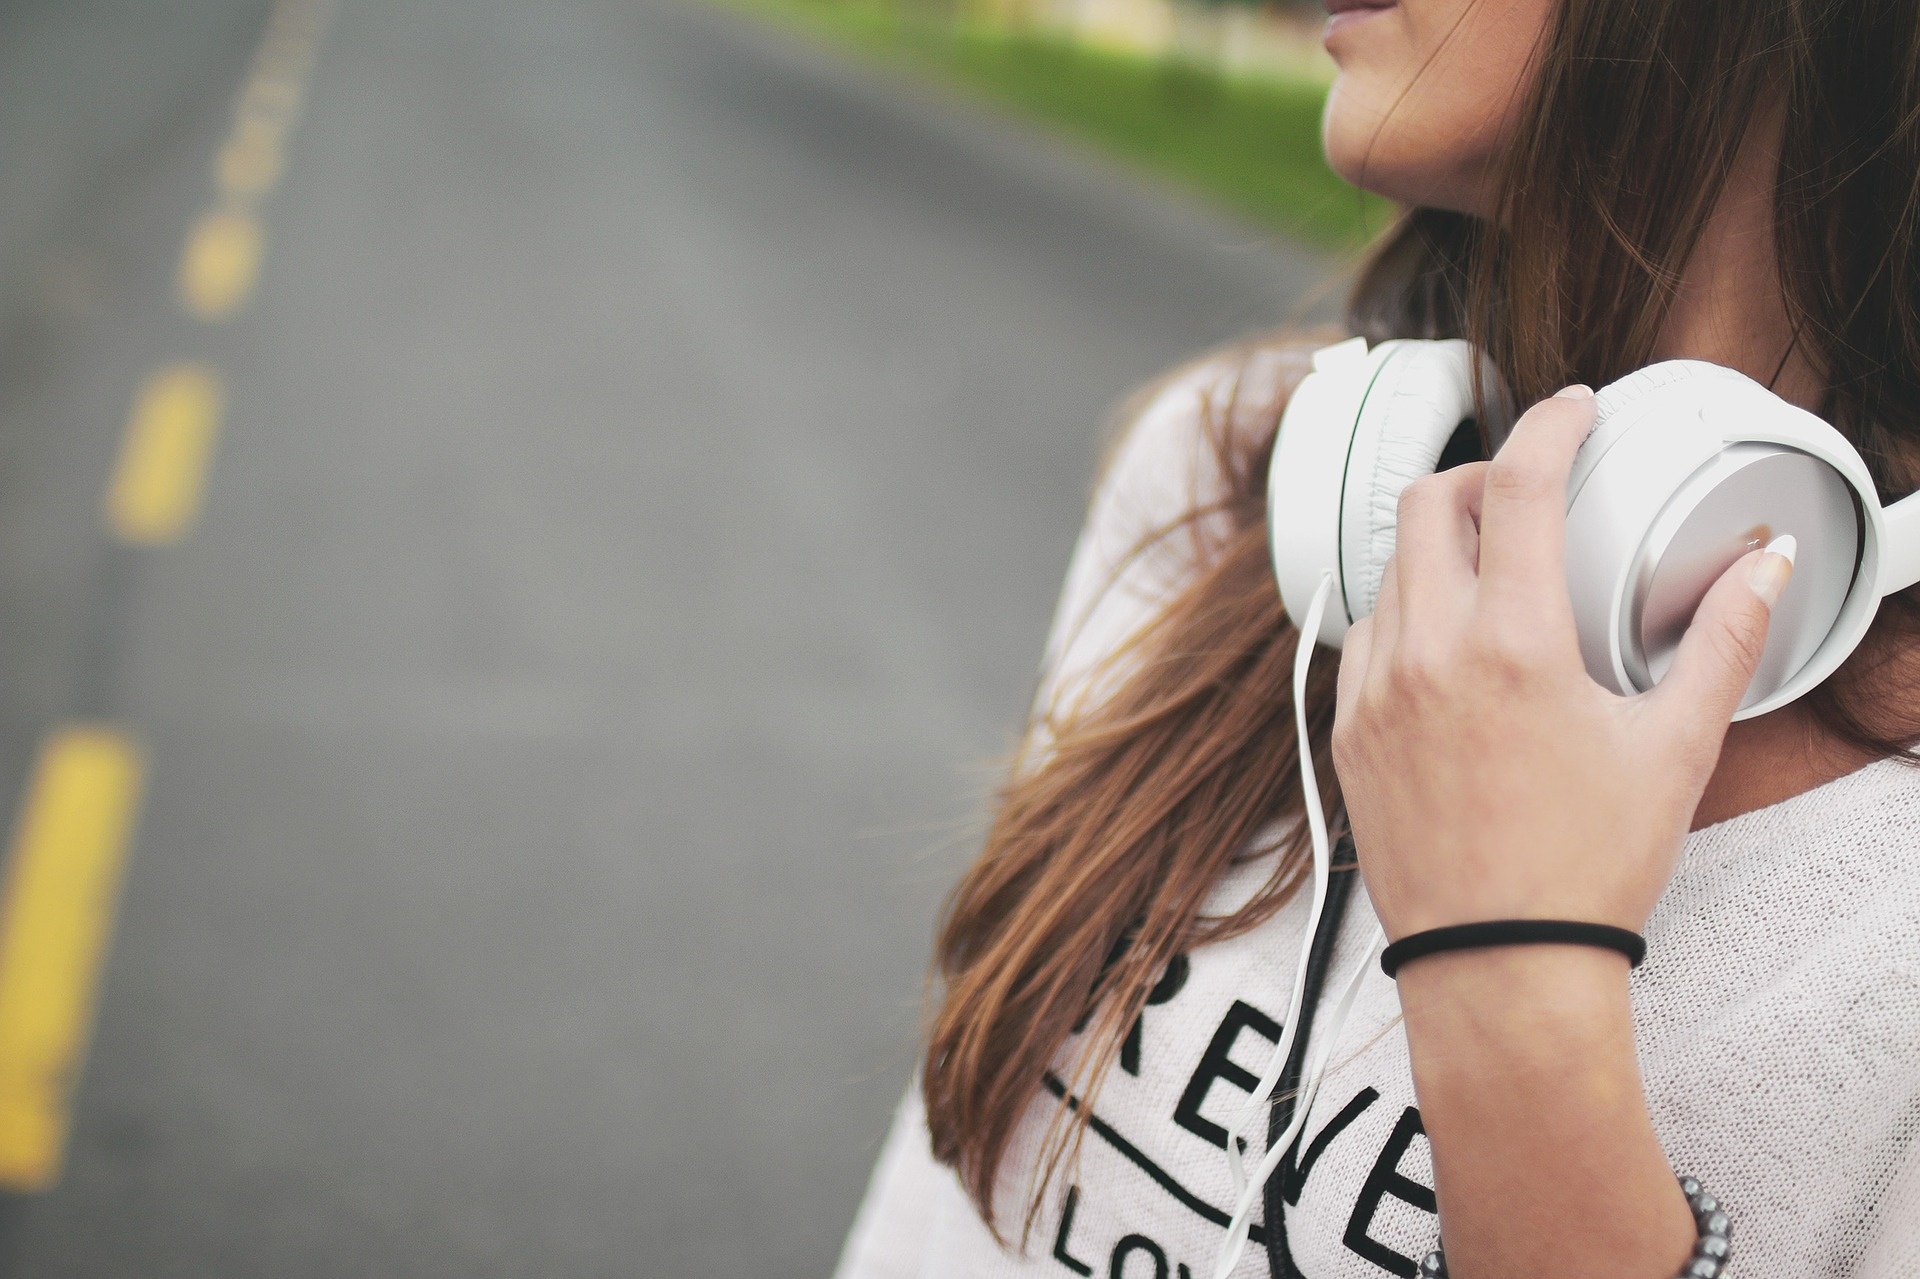 Can Music Be a Bad Influence on Kids & Teens? - Free Teens Youth - Changing Minds, Transforming Lives